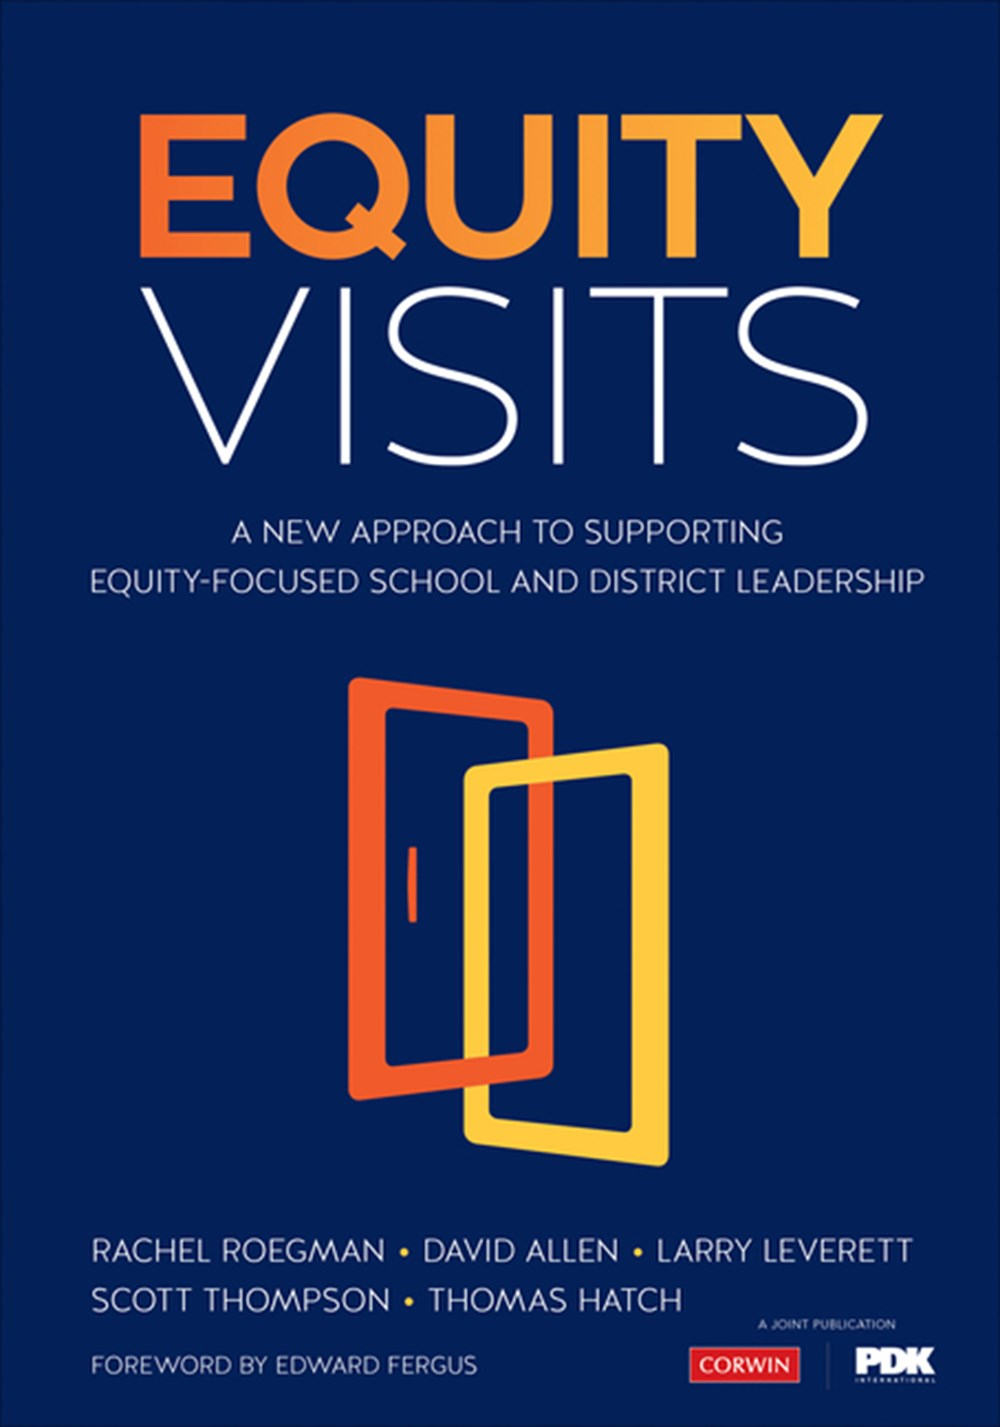 Equity Visits A New Approach to Supporting Equity-Focused School and District Leadership